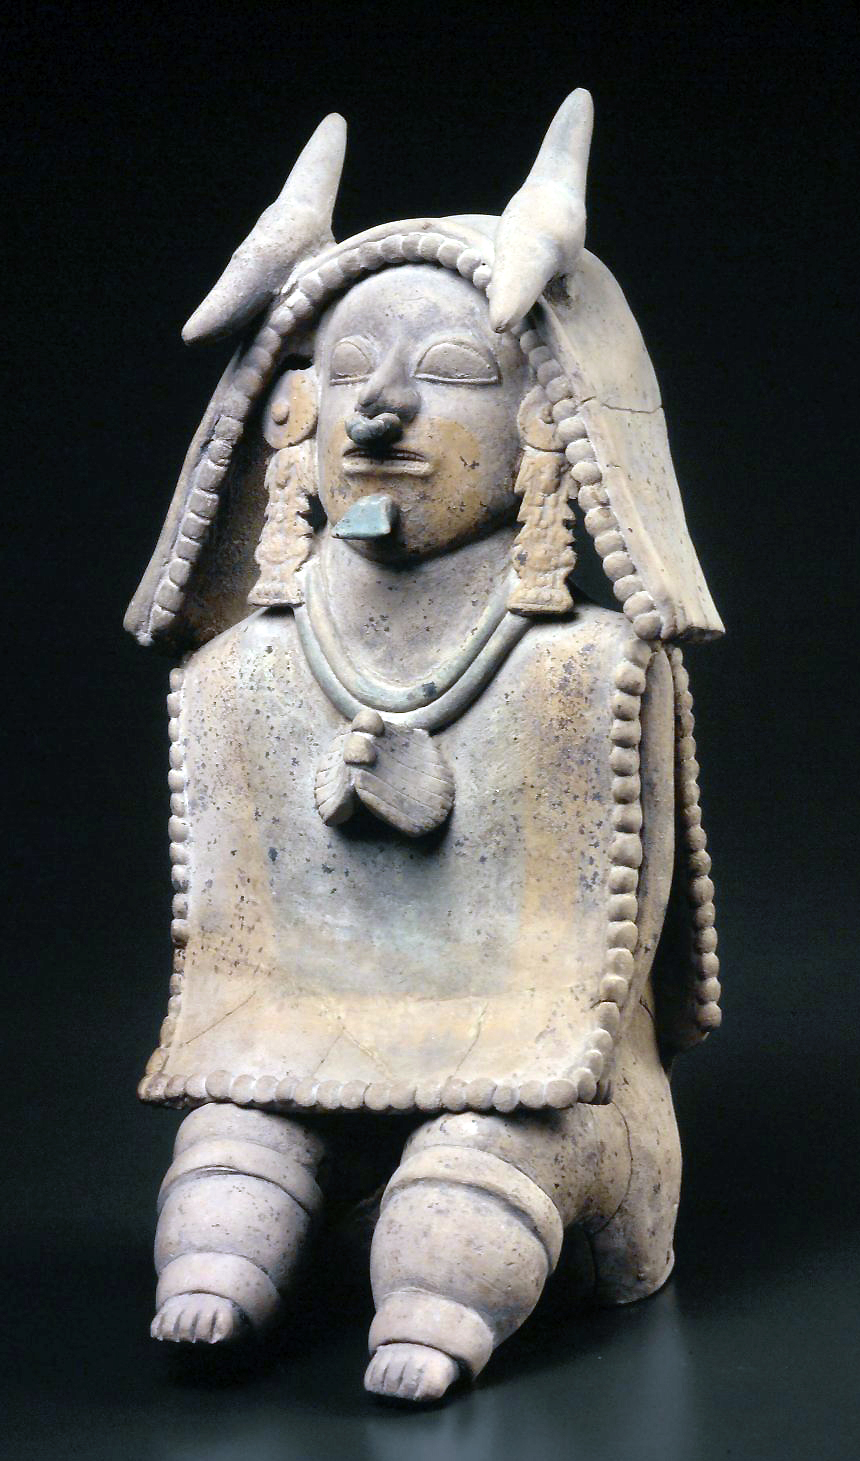 Seated Figure, Jama-Coaque culture, Ecuador, 500 BCE-500 CE, clay with post-fire paint, 13 x 6 3/4 inches. Brooklyn Museum.